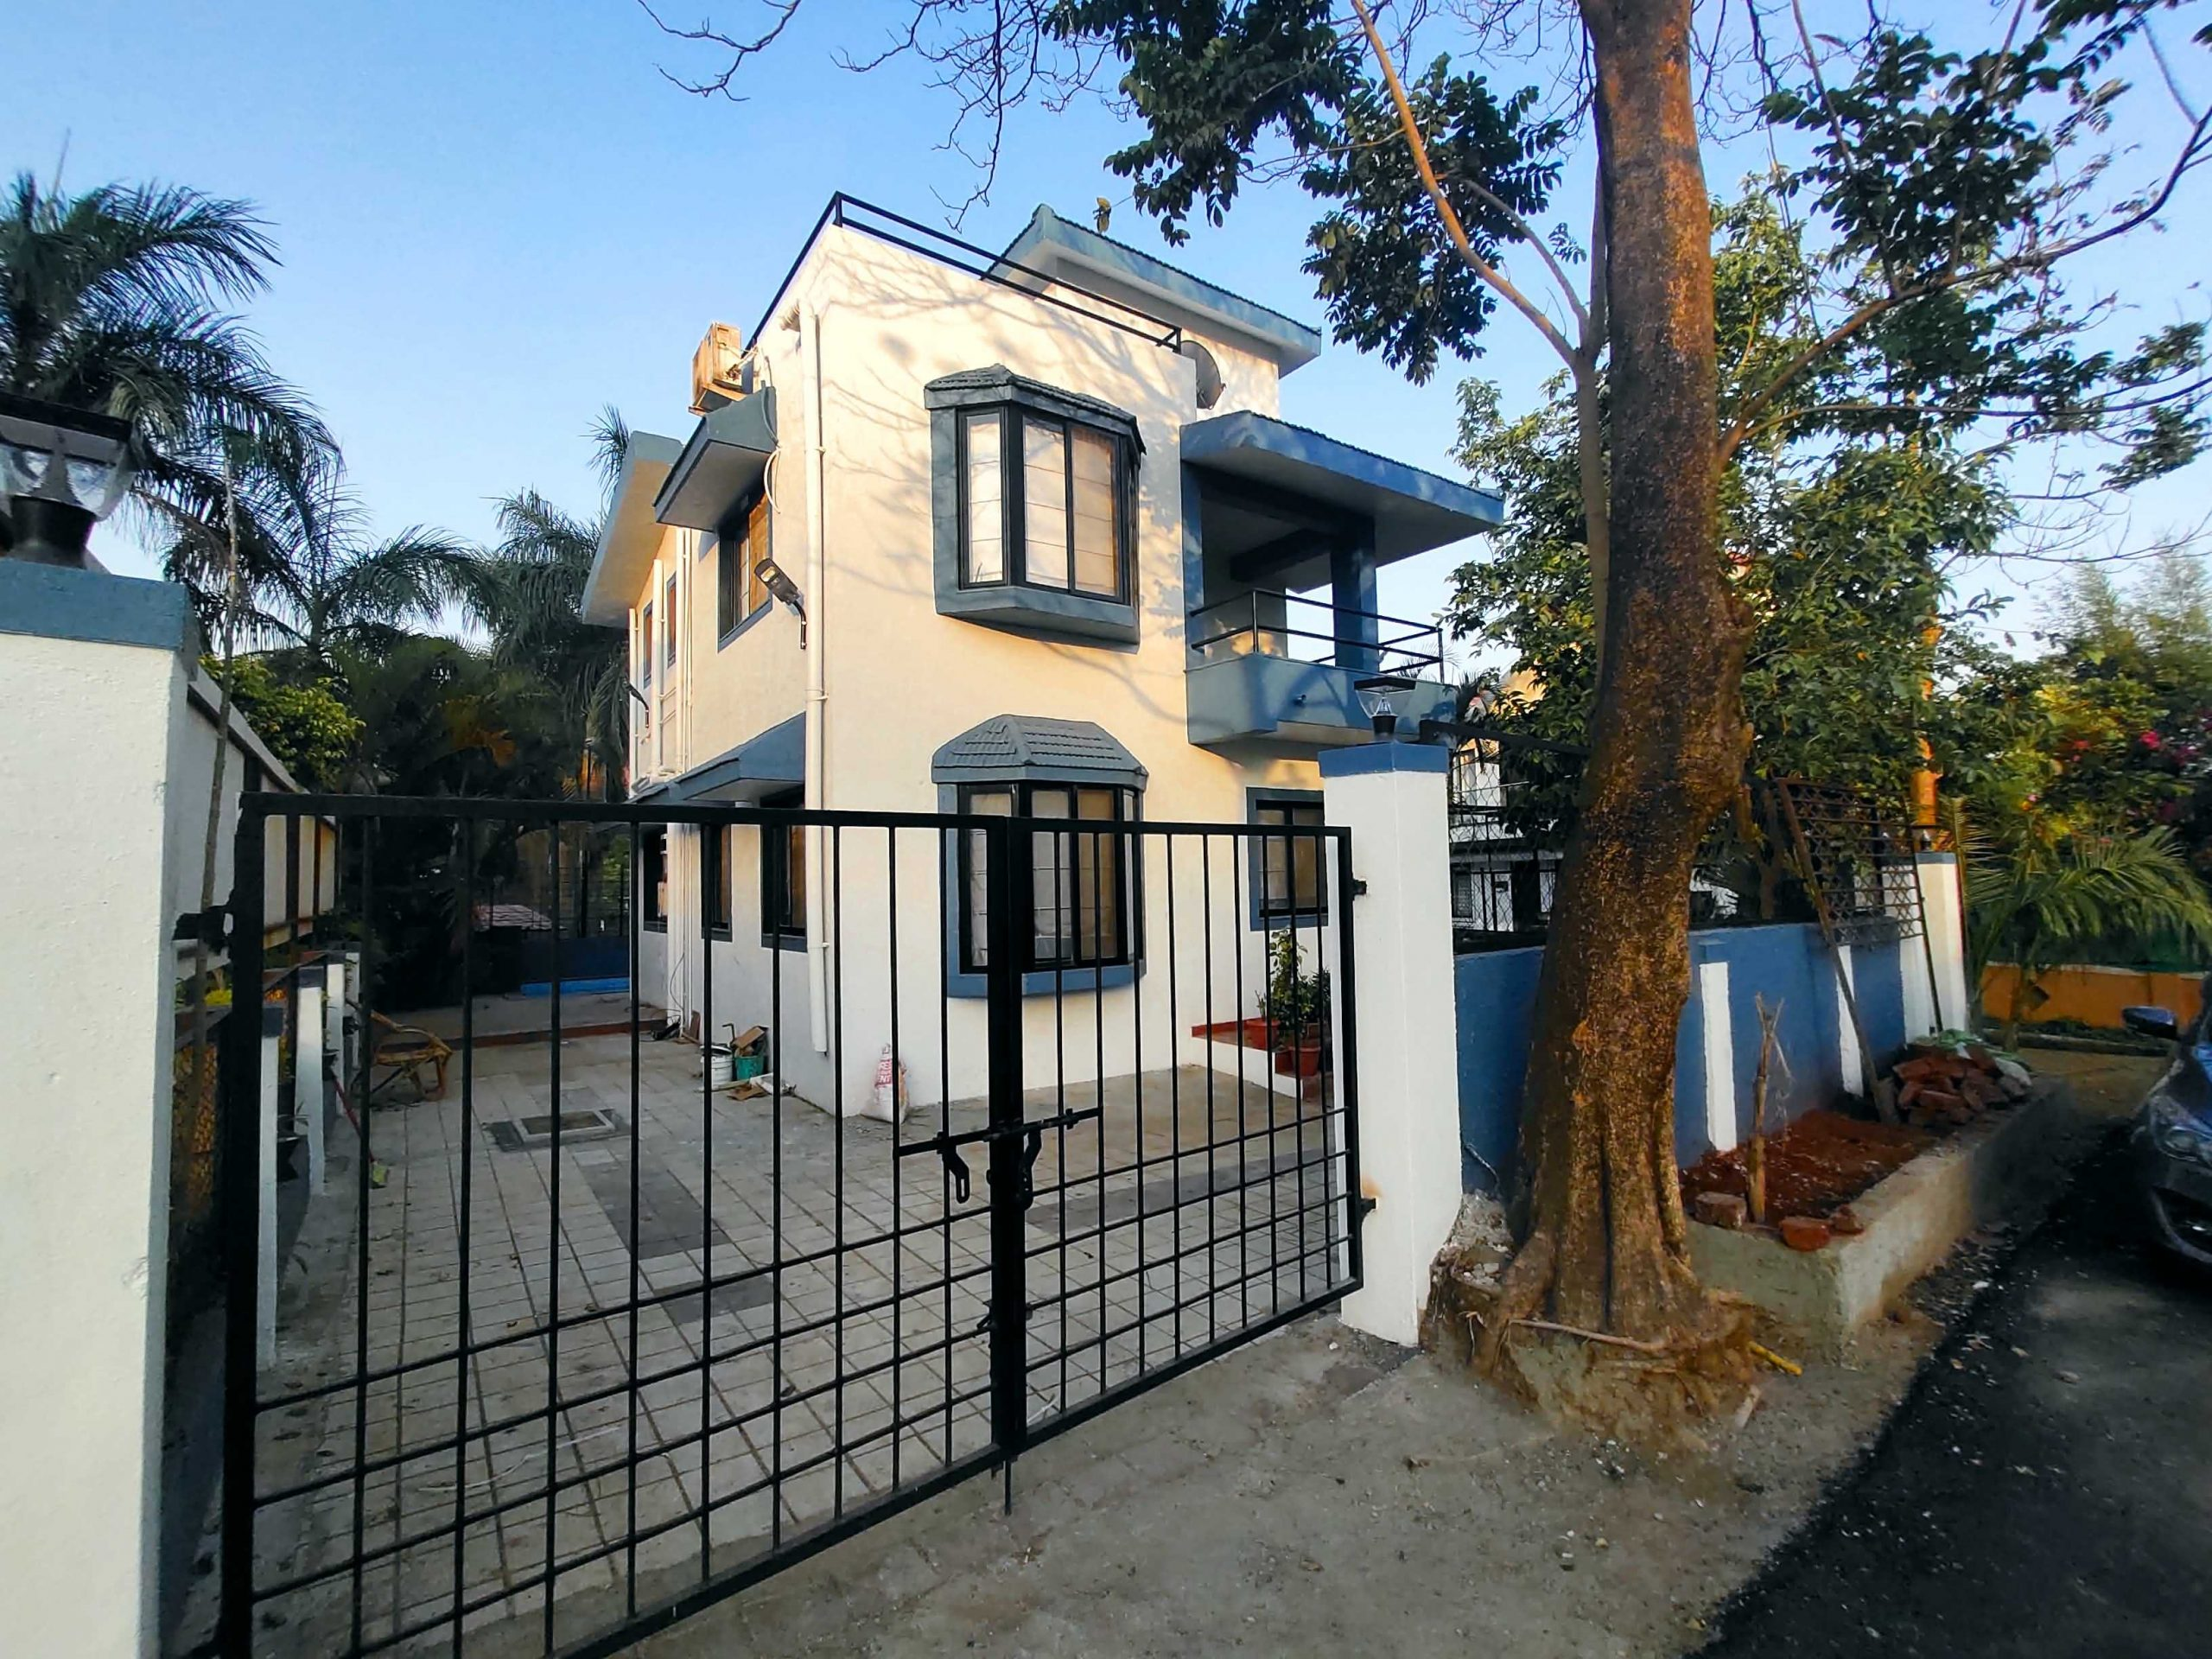 HAVE Hillcrest YW GV 3BHK Villa with Swimming Pool in Gold Valley, Tungarli